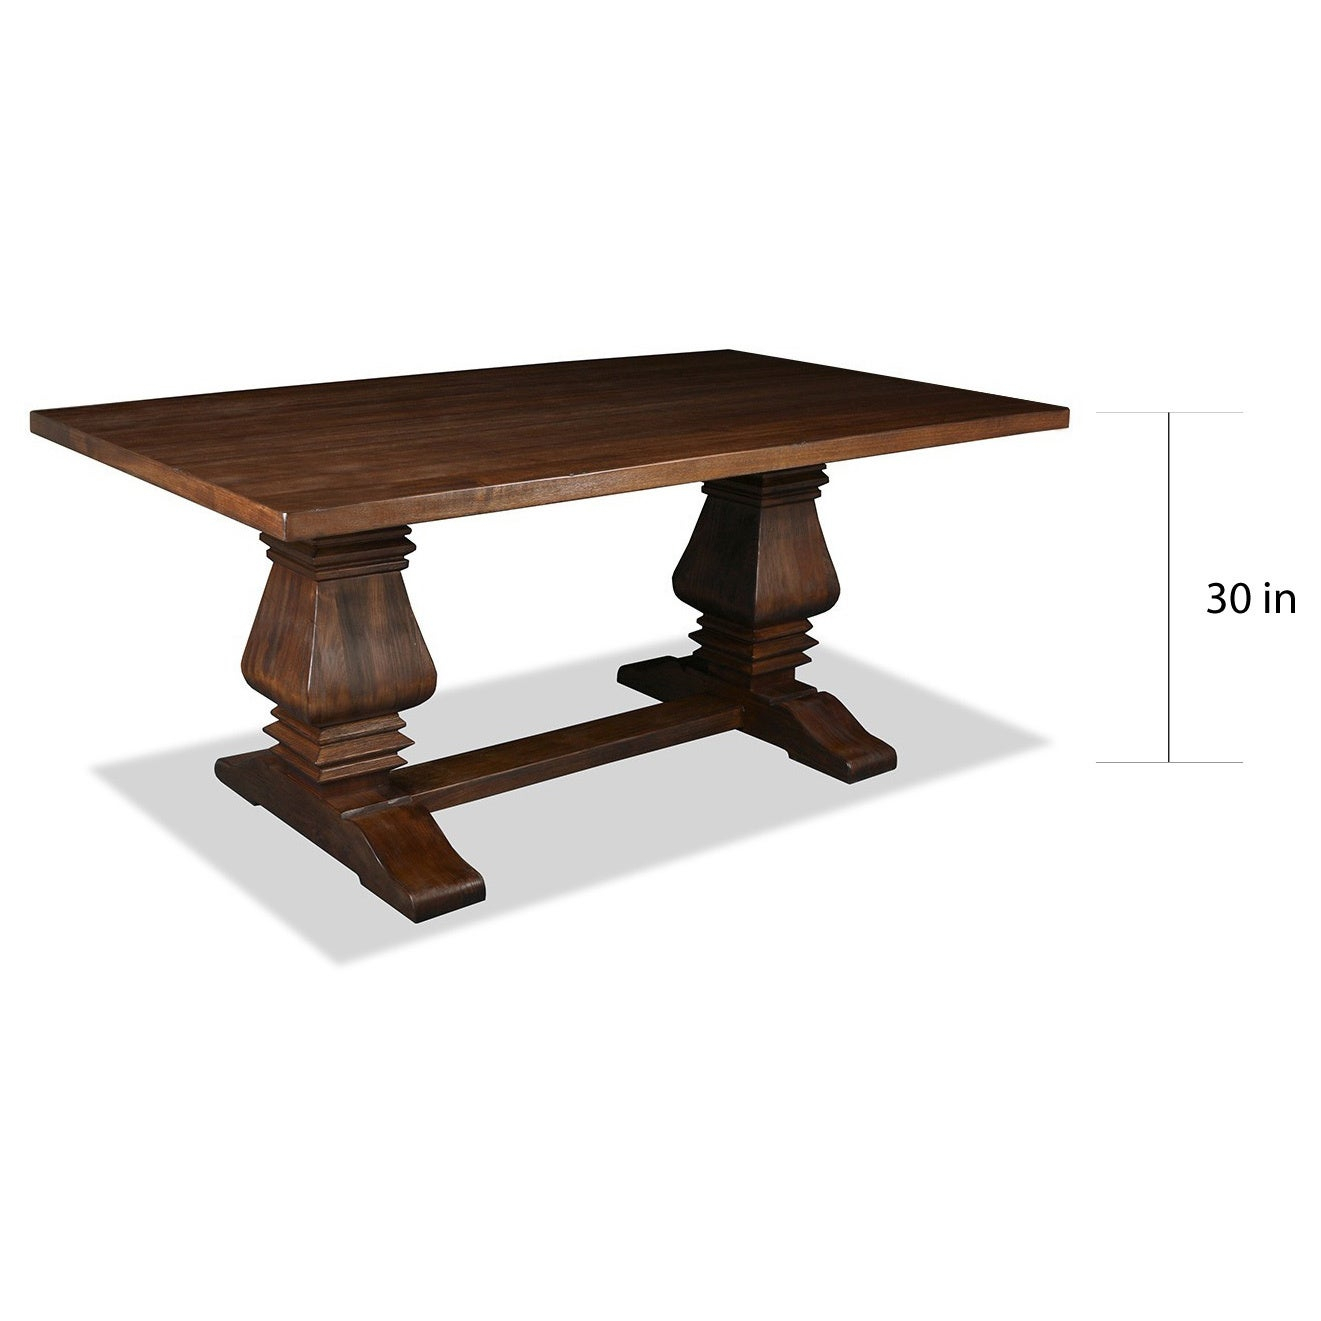 Top Product Reviews For Toscana Reclaimed Wood Rectangular Within Most Current Tuscan Chestnut Toscana Extending Dining Tables (View 23 of 25)